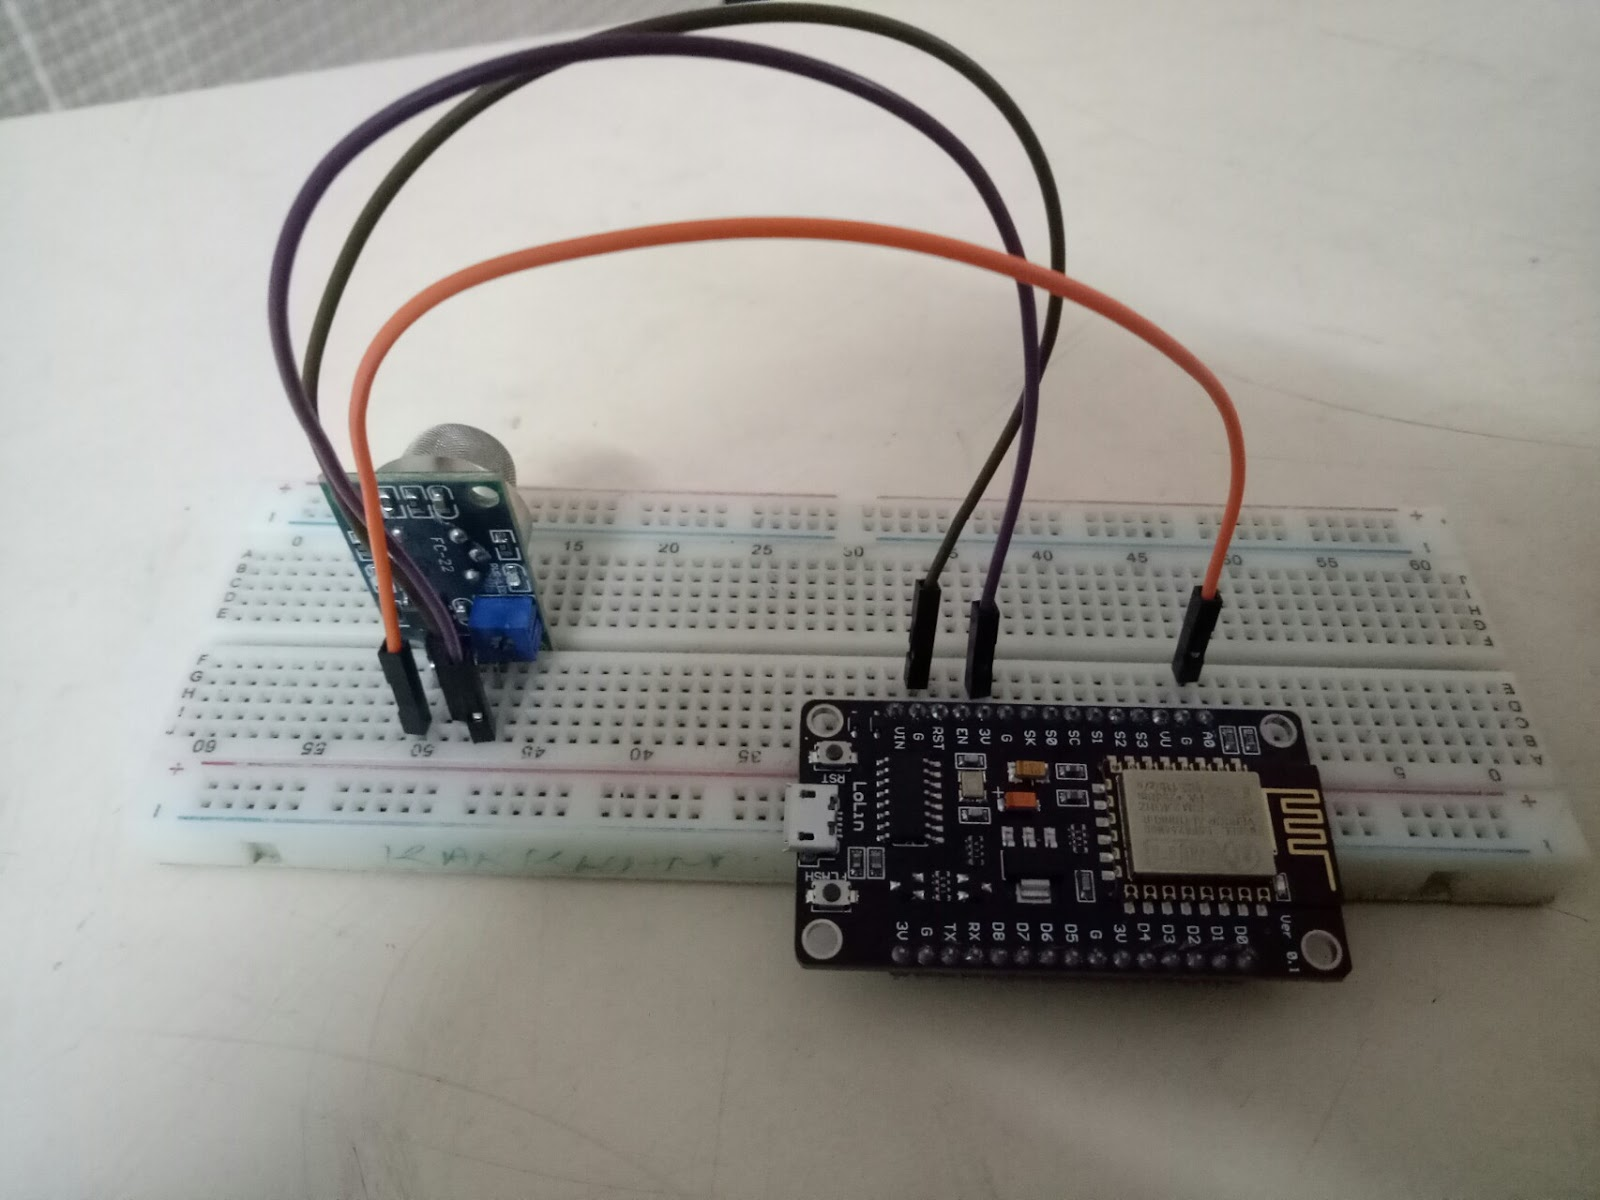 IoT - LPG Gas Sensor Logging with NodeMCU and Thingspeak